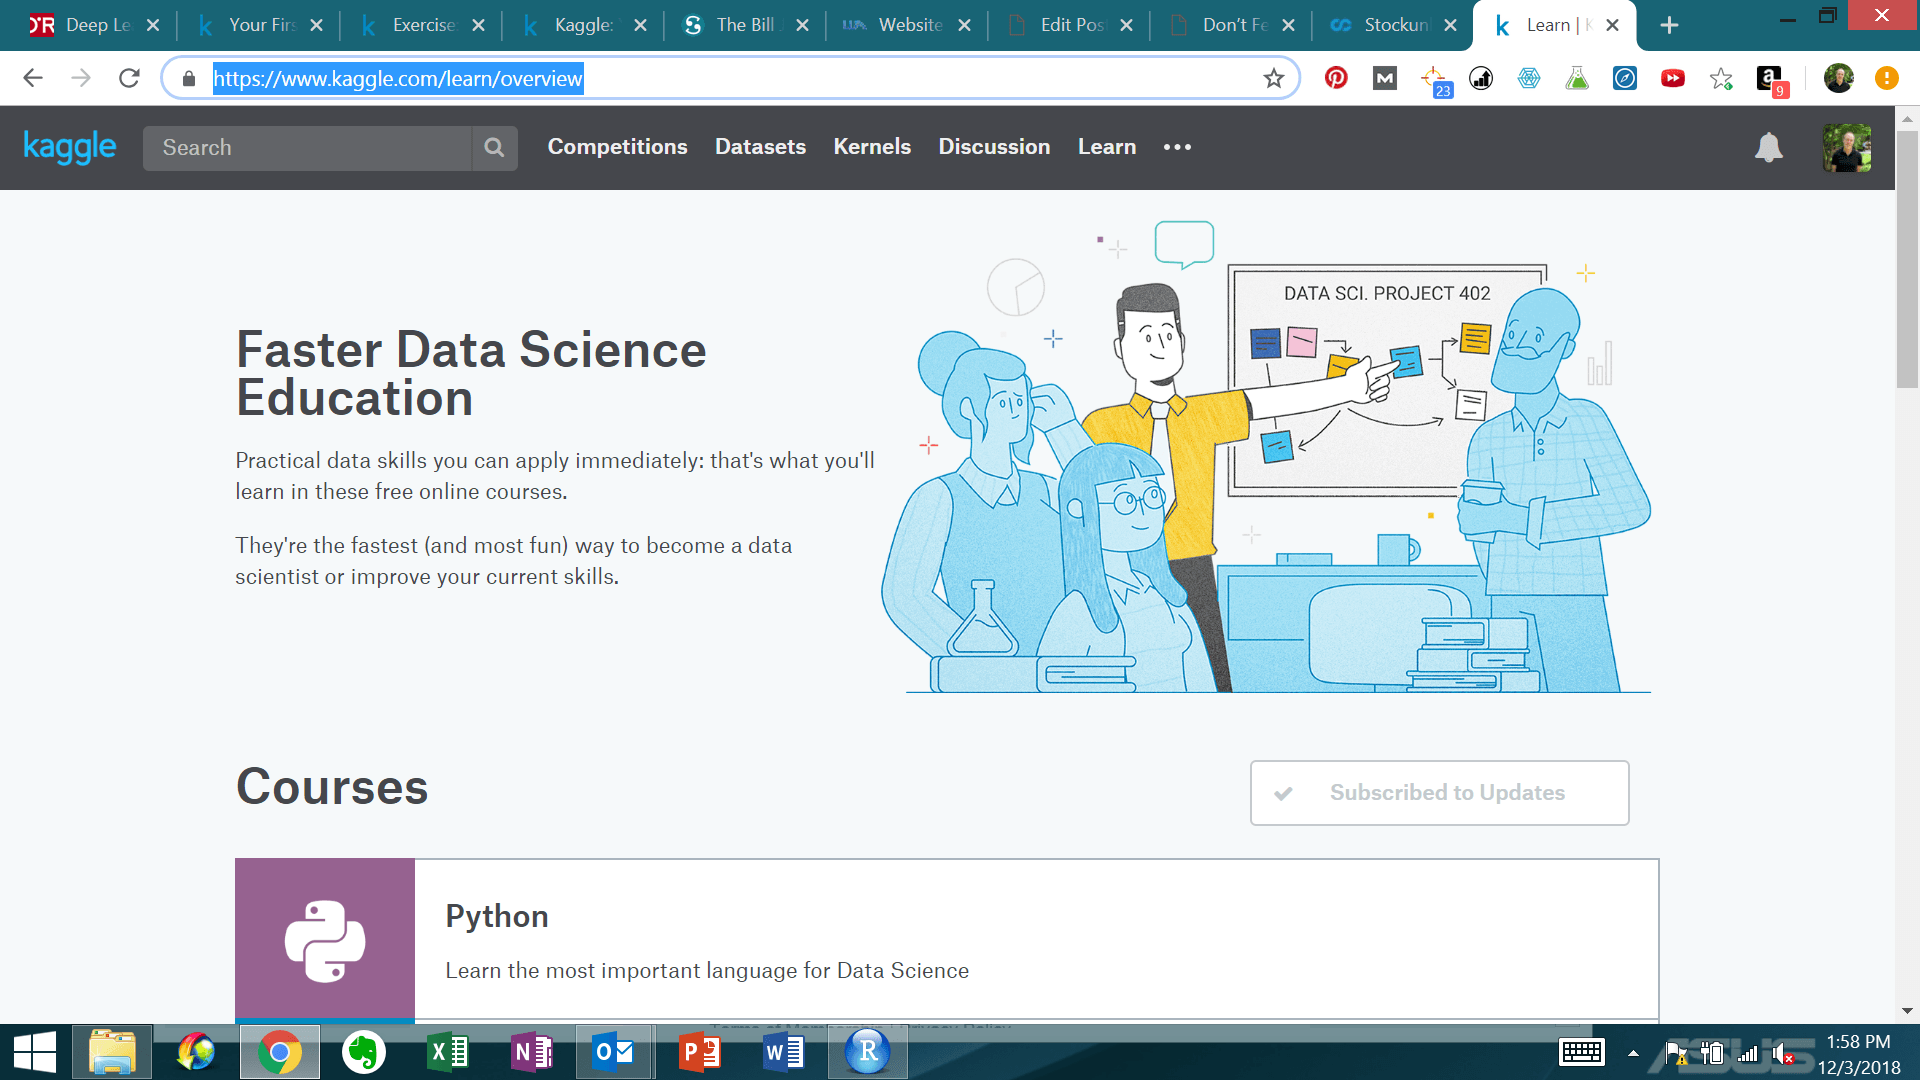 Learning Resources on Kaggle